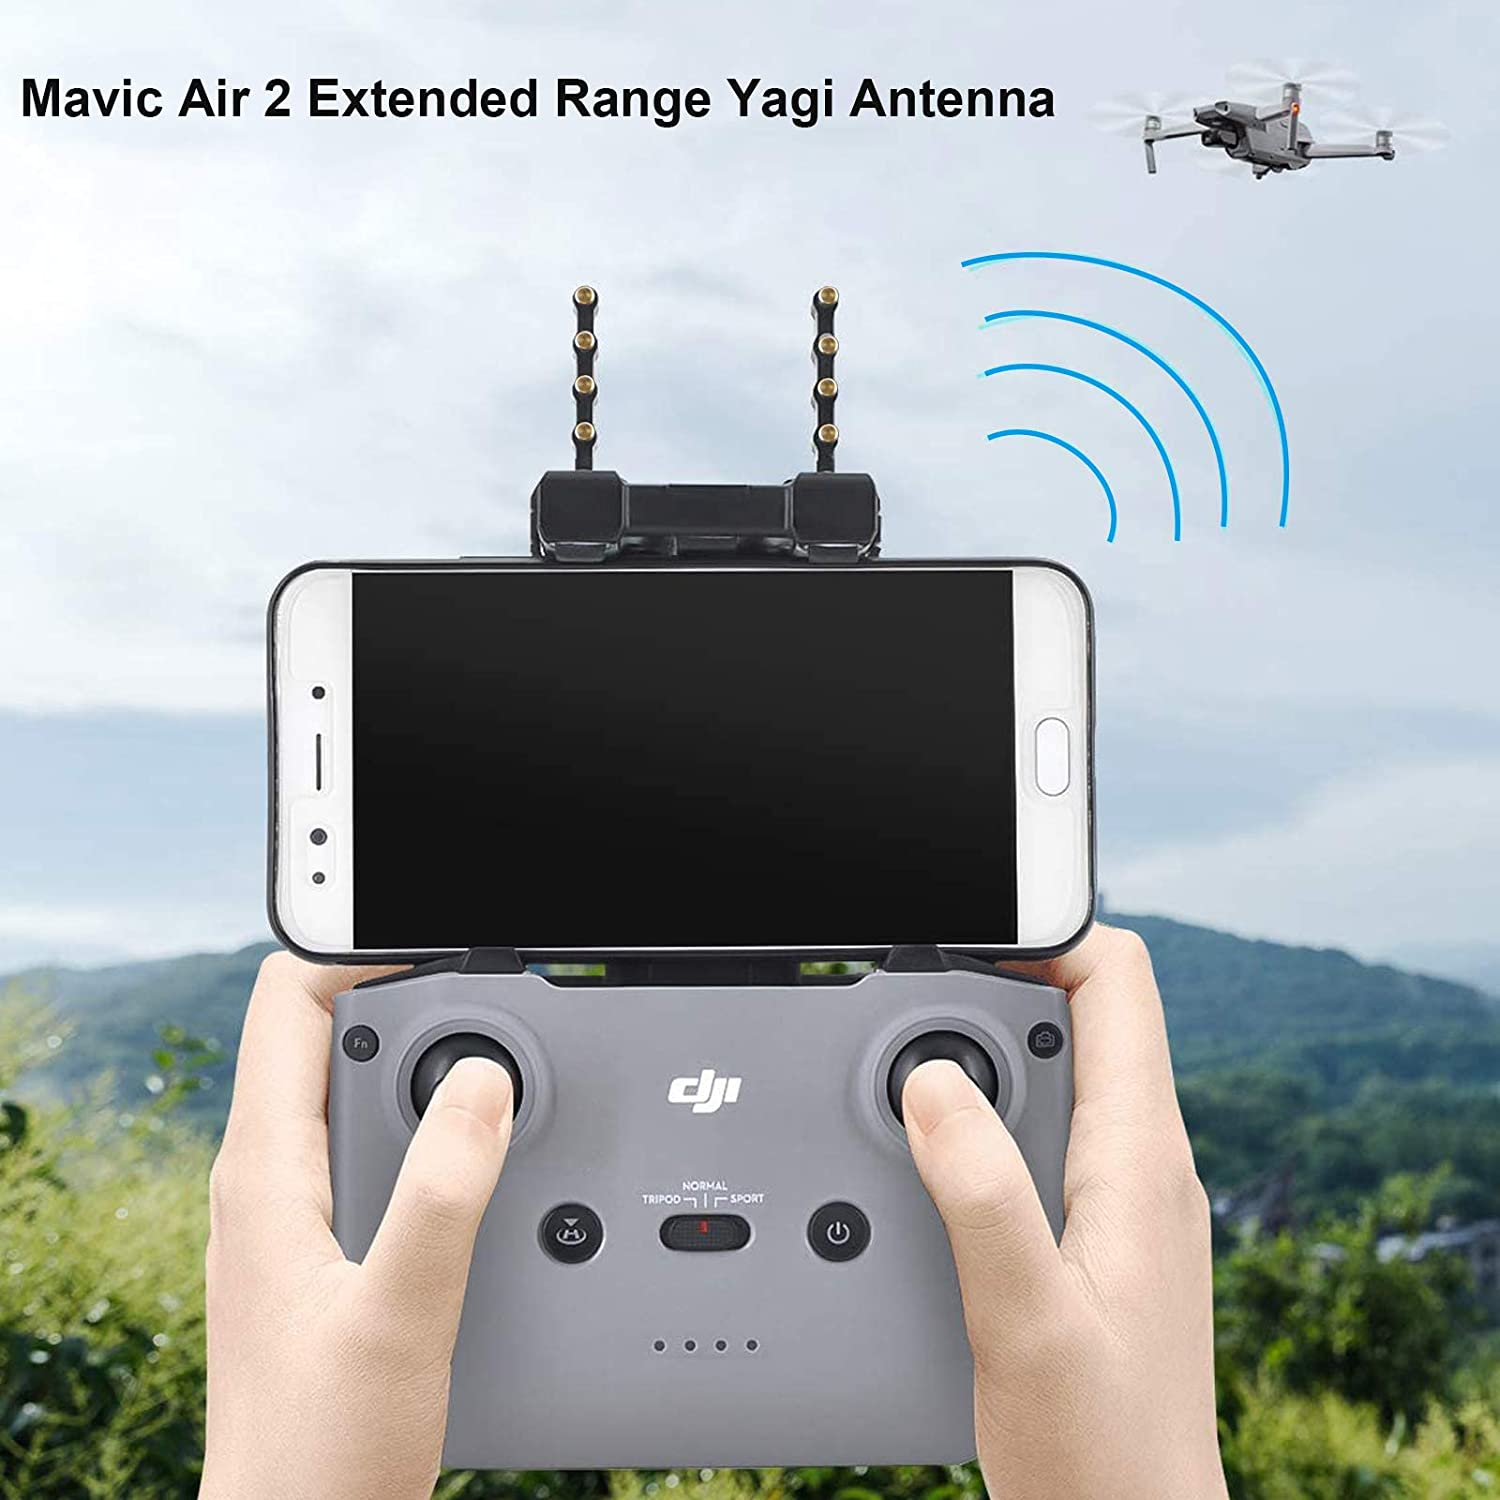 Skyreat Antenna Range Extender Yagi-UDA 5.8Ghz Signal Boosters for Mavic Air 2 Drone Specific Accessories